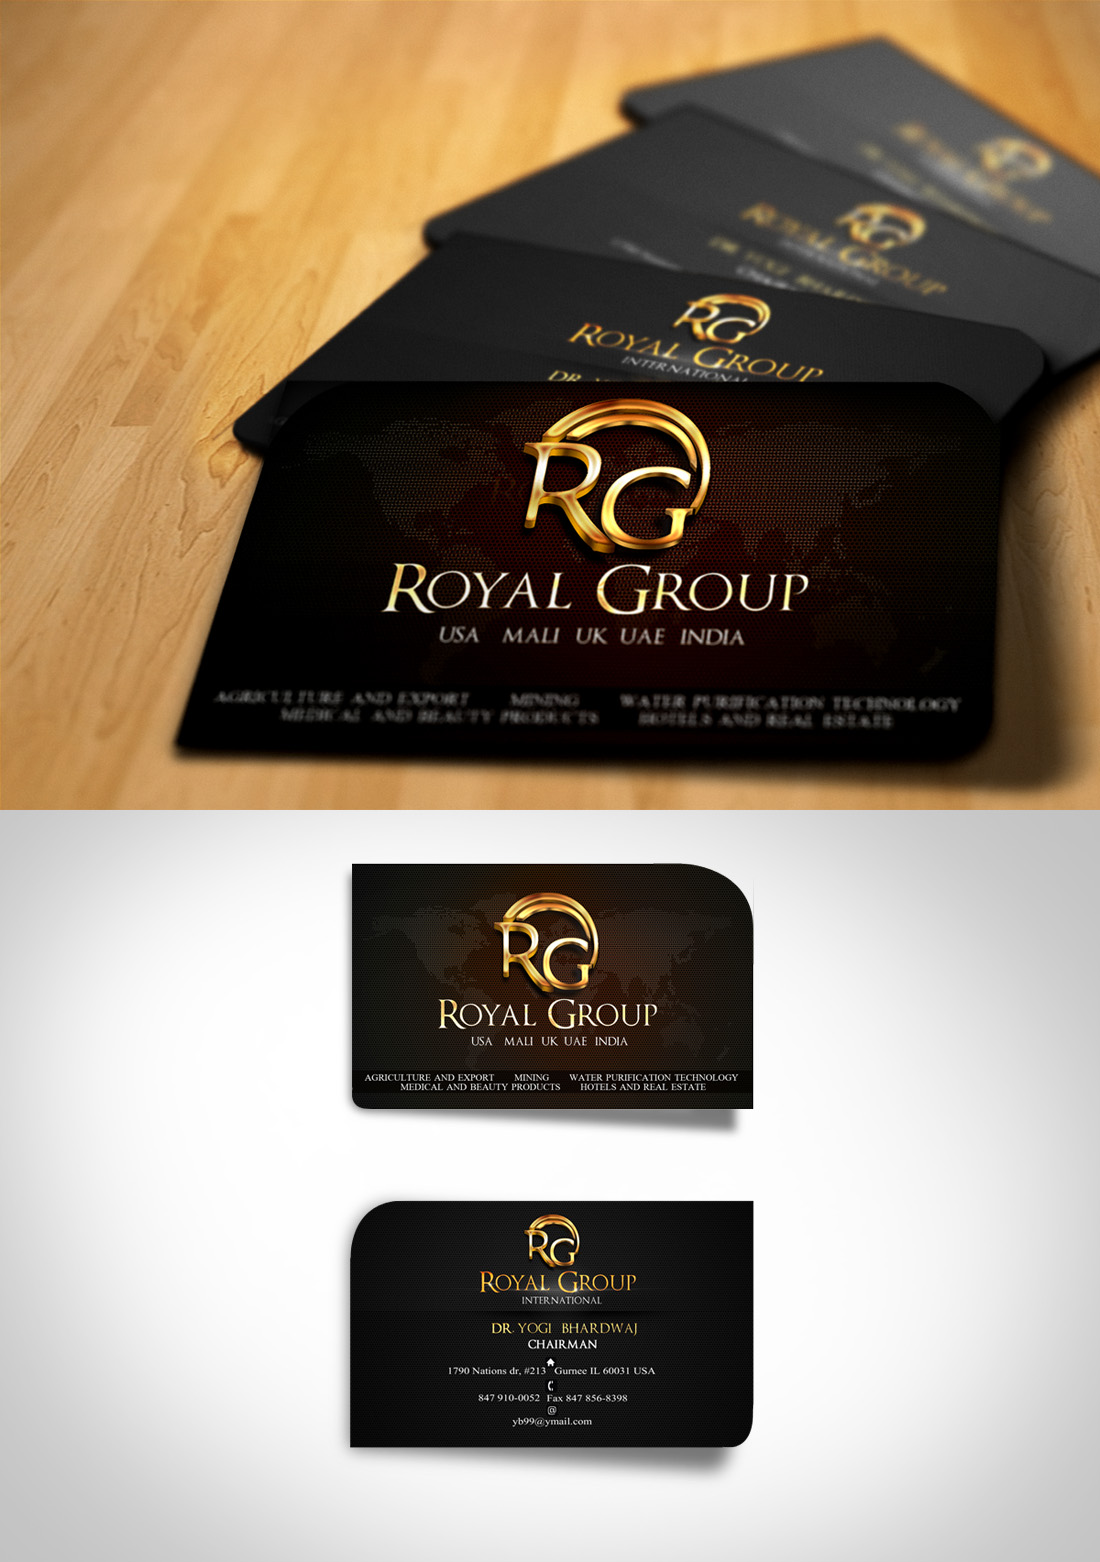 Business Card Design by Oliver WangHo - Entry No. 47 in the Business Card Design Contest Royal Group International Business Card Design.